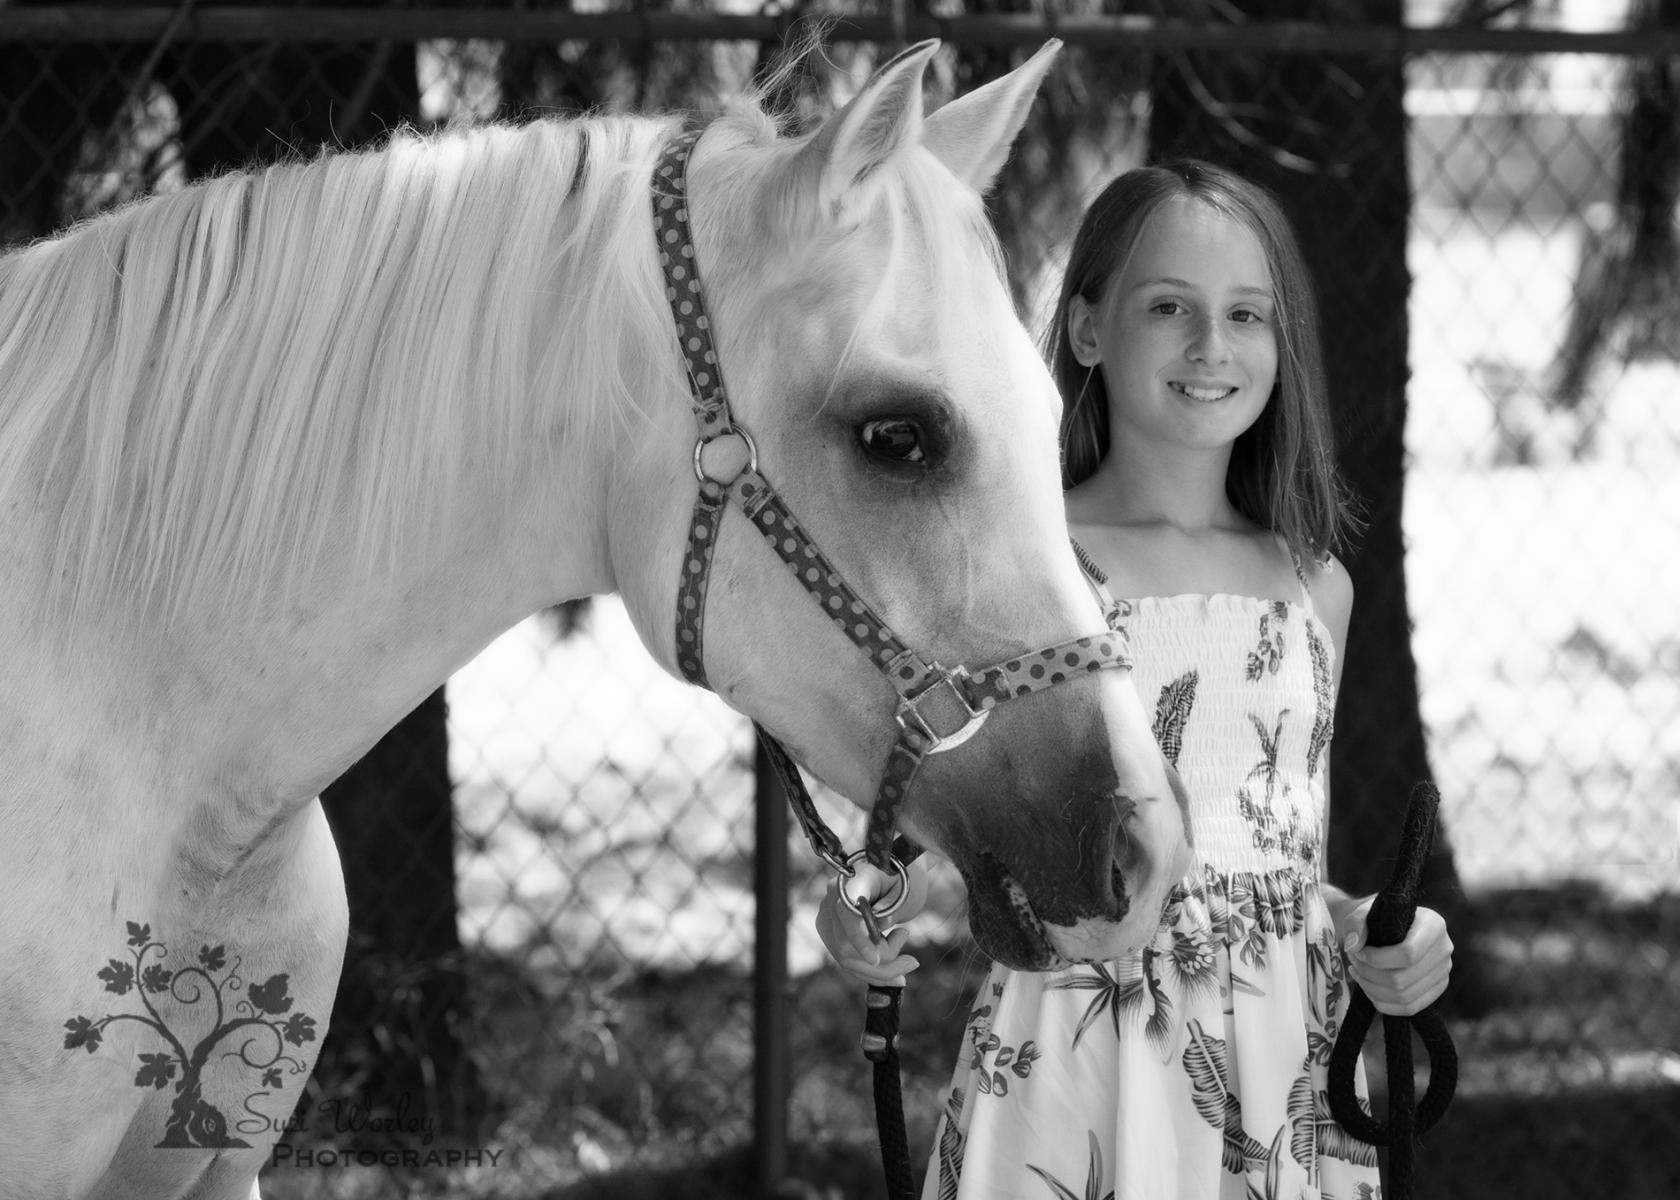 Beautiful Girls. #SuziWorleyPhotography #Portraits #Arabian #Teenager #dresses #farm #equineportraits #Black&White